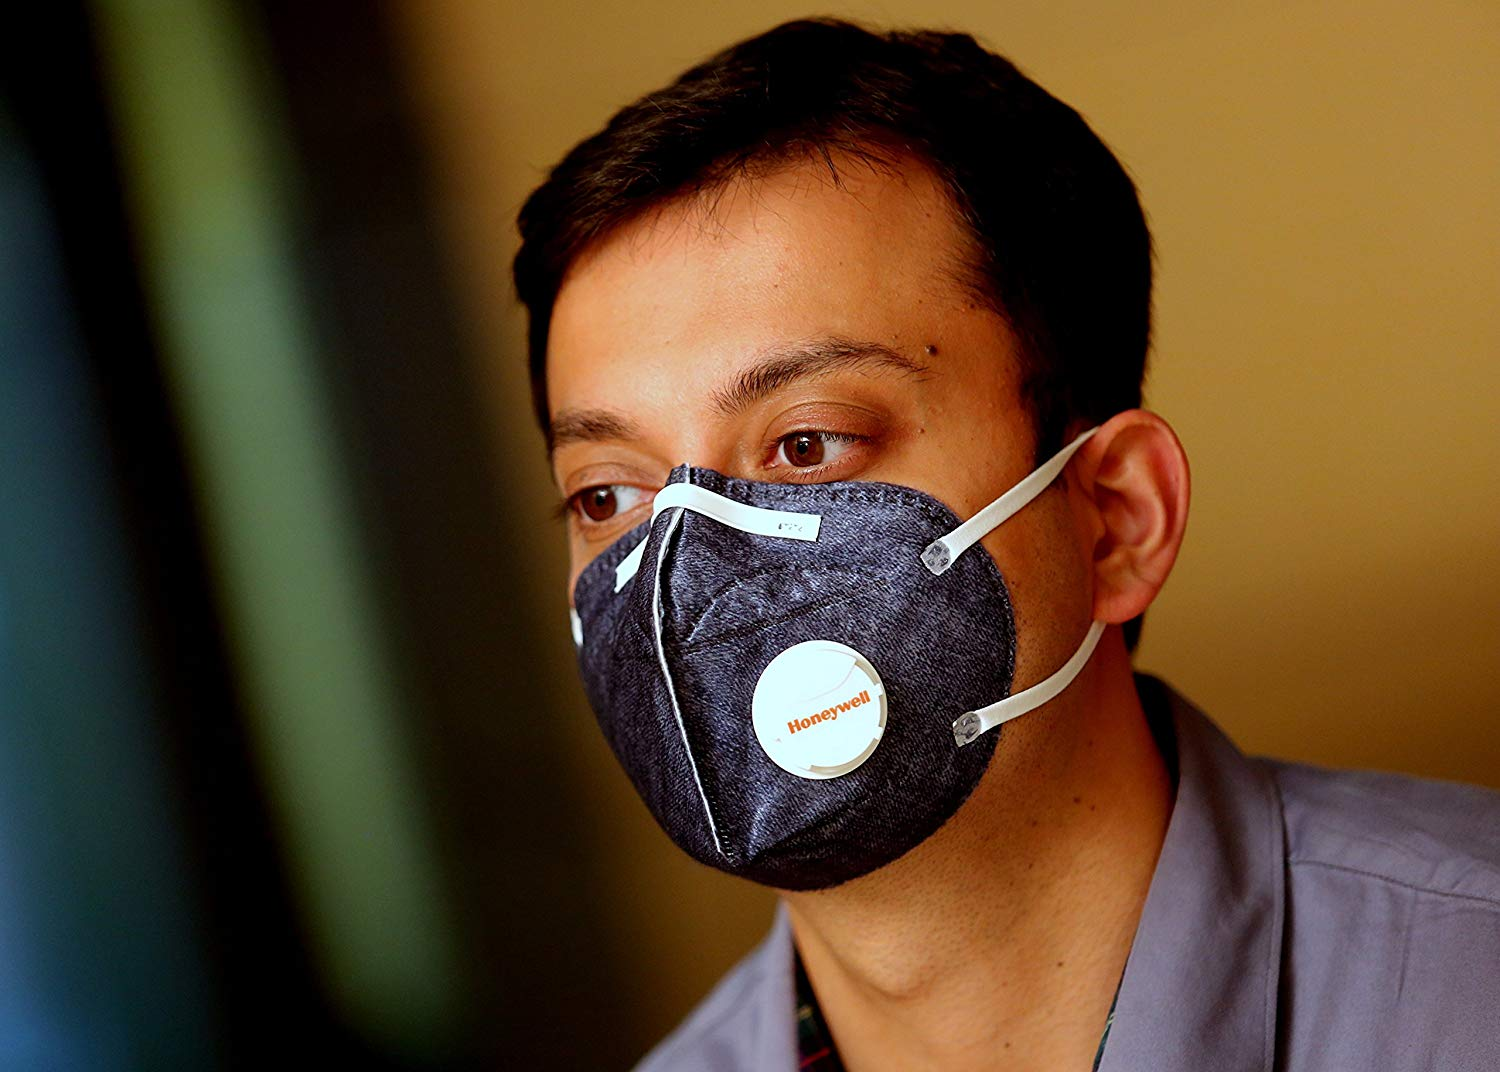 Honeywell PM 2.5 Anti Pollution Foldable Face Mask